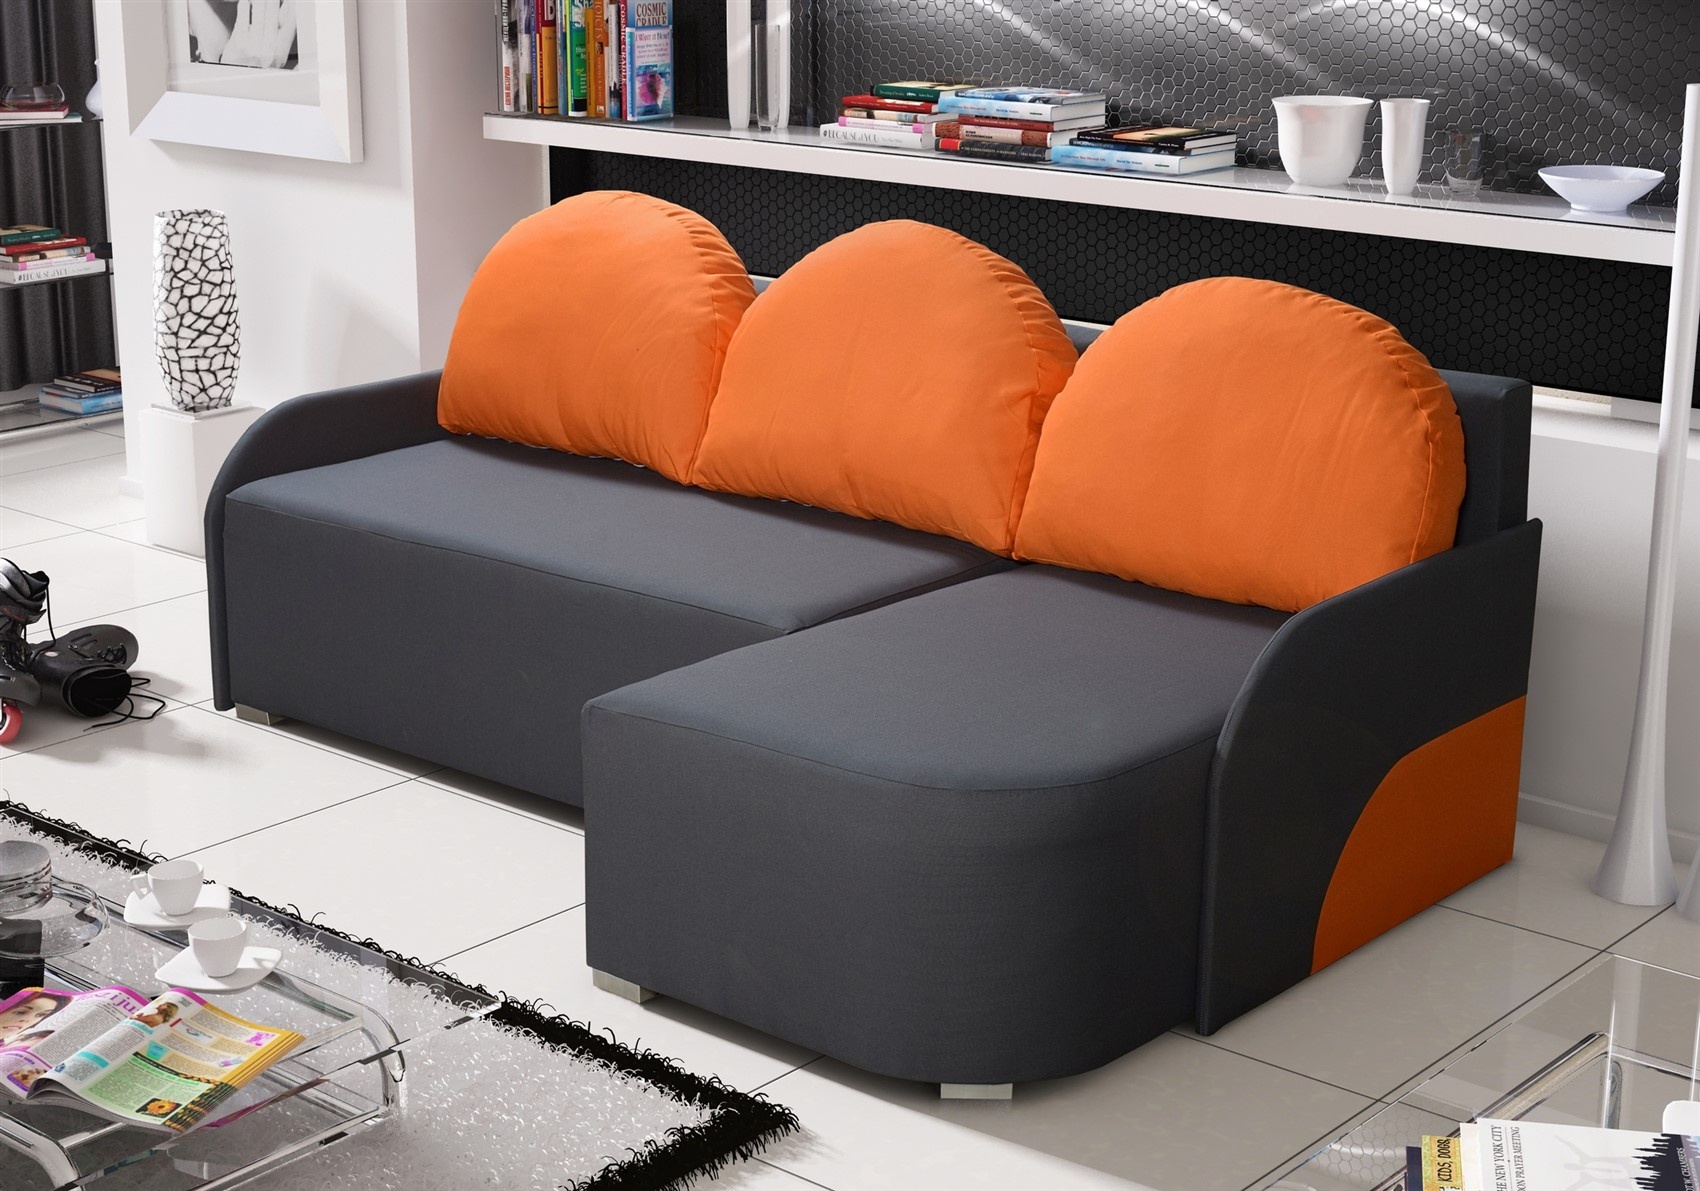 Candy Couchgarnitur Ecksofa Sofa Candy Mit Schlaffunktion Ottomane Rechts Anthrazit Orange